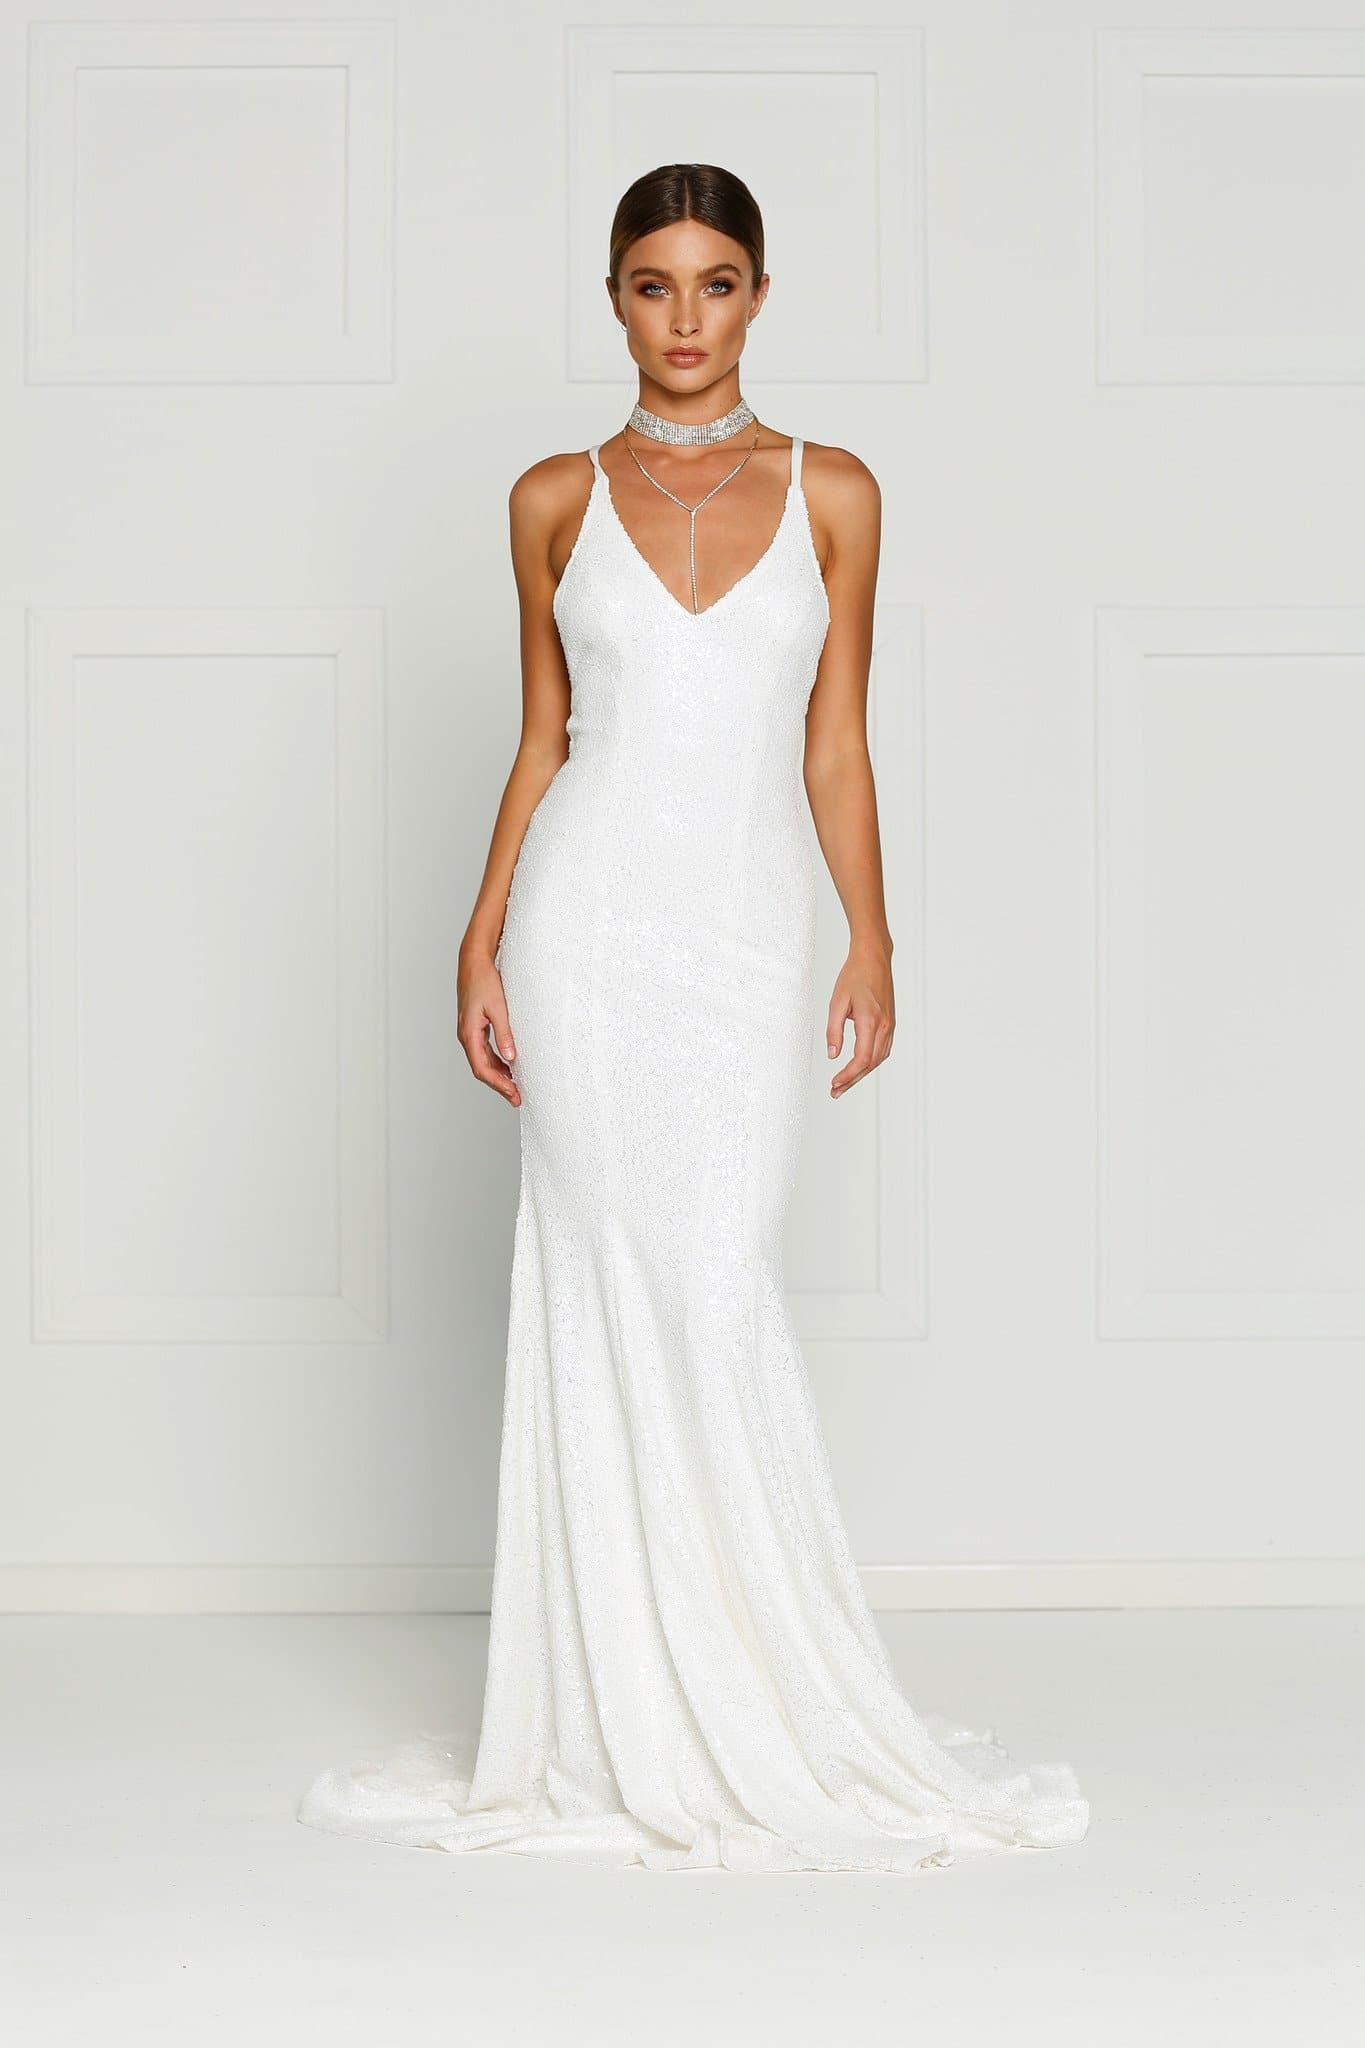 A&N Gigi- White Sequins Dress with V Neck and Criss Cross Back